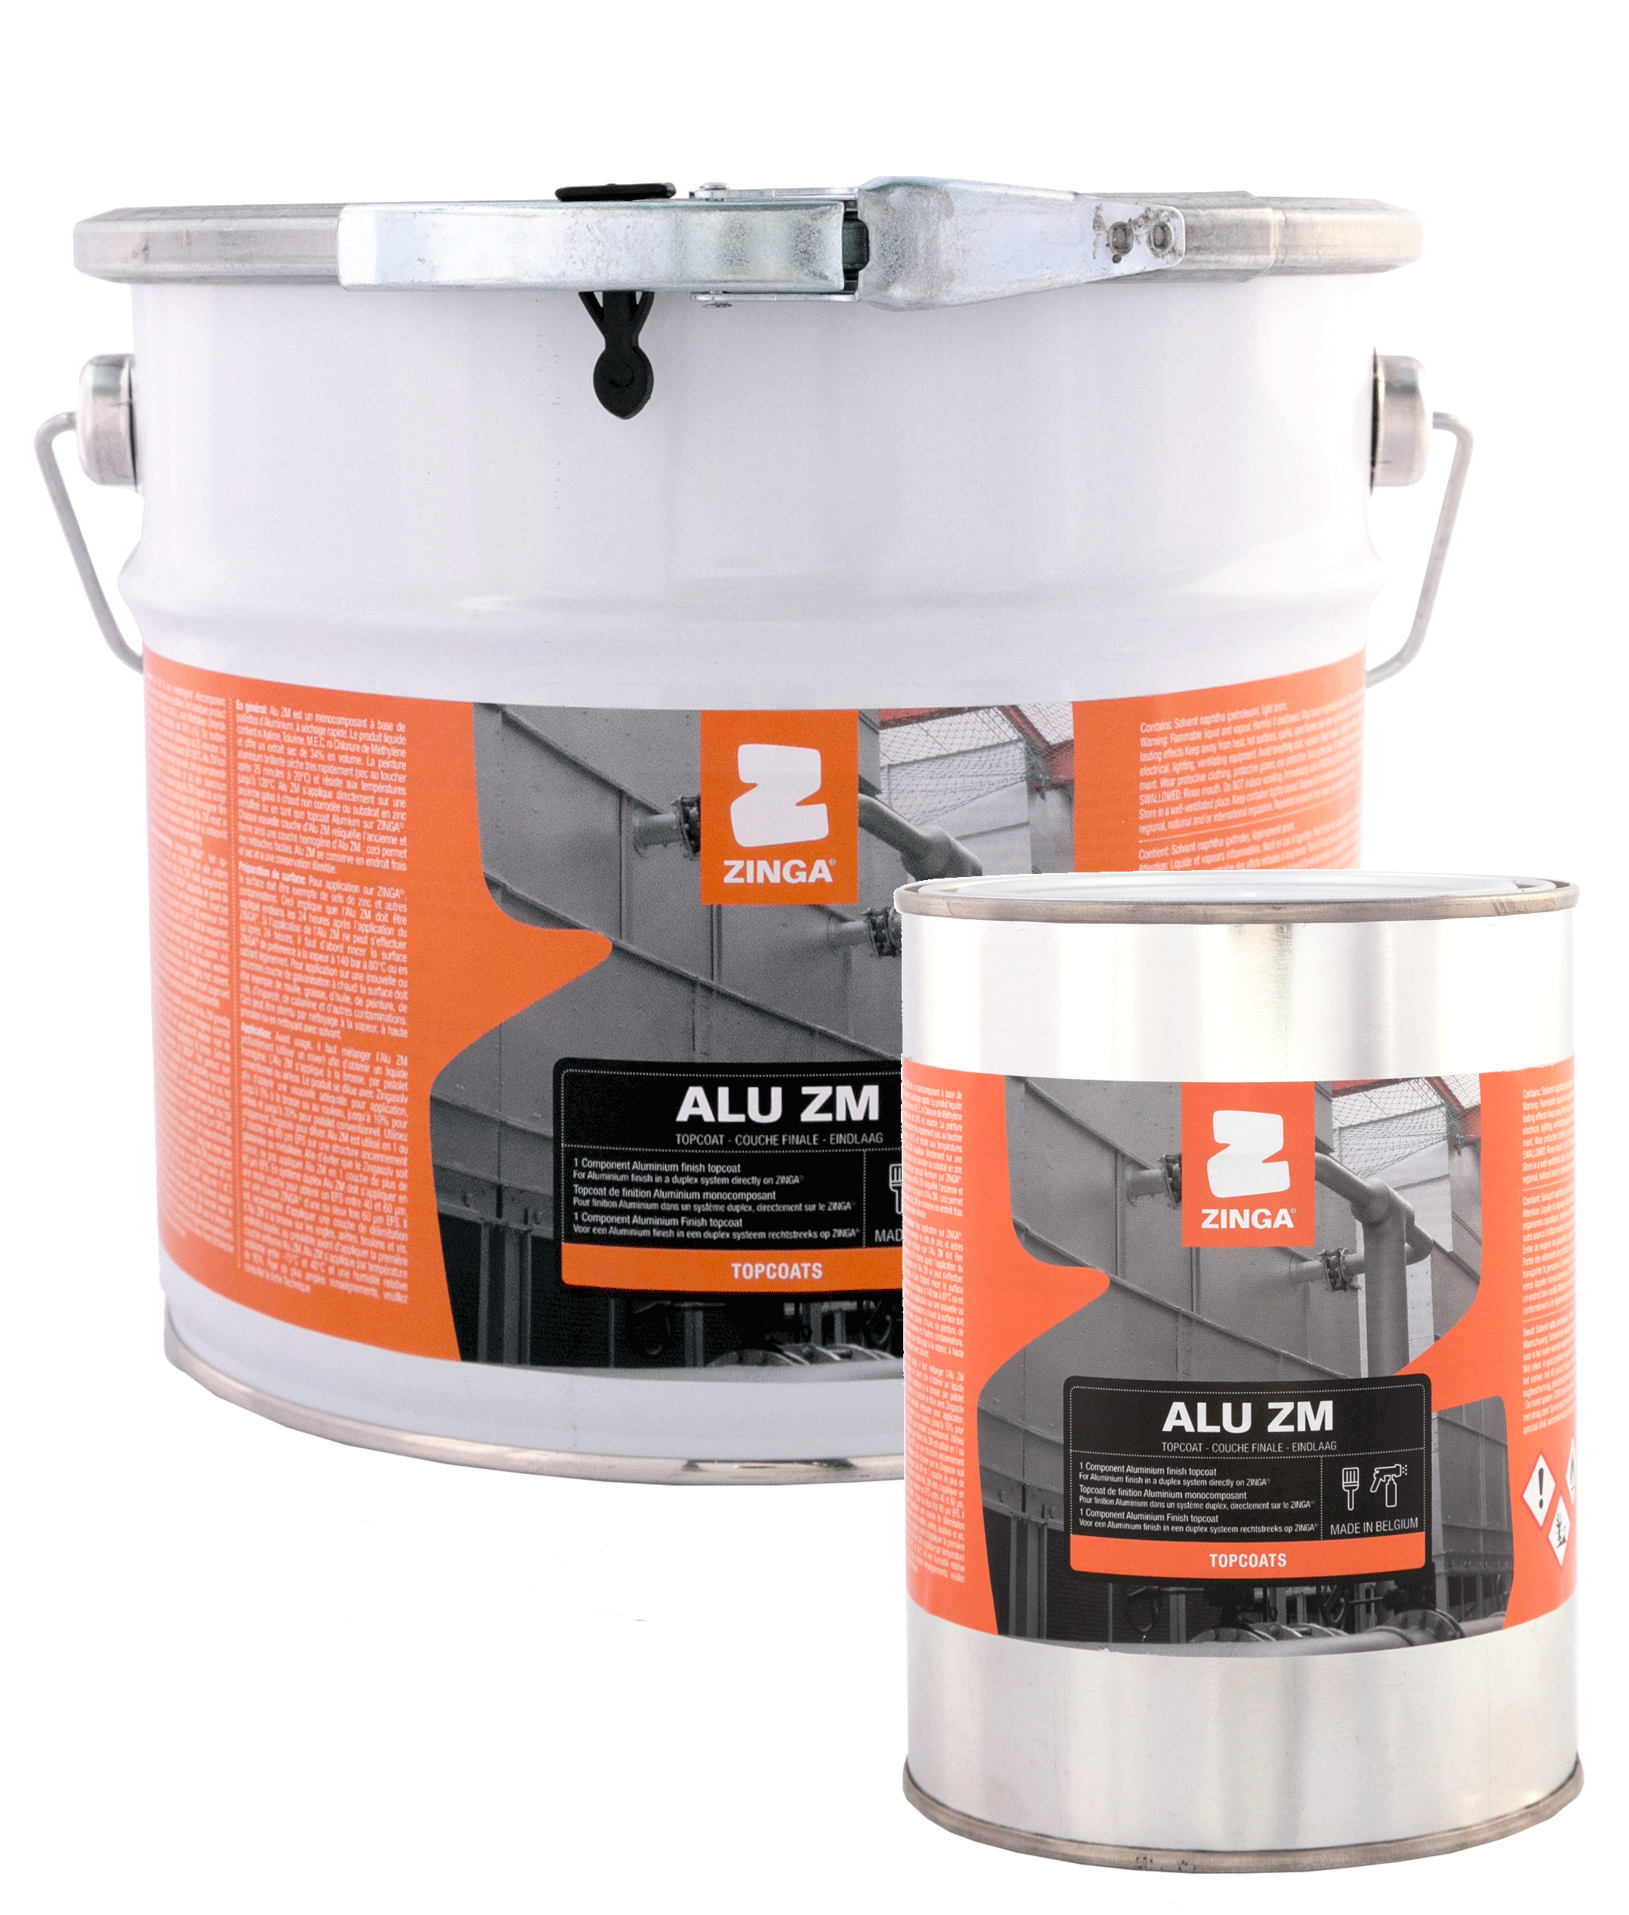 ALU ZM - Alu ZM is a quick drying one pack coating based on aluminium flakes. It can be applied directly onto old, on corroded hot-dip galvanised or thermal sprayed zinc substrates or as an aluminium topcoat on ZINGA. It can be applied by brushing or spraying in a wide range of atmospheric circumstances. Alu ZM is mainly applied for aesthetical reasons as it gives a shiny aluminium aspect, but it also has good chemical and abrasion resistance which allows it to be used in industrial environments.For more product information click on the data sheet links:TDS Alu ZM